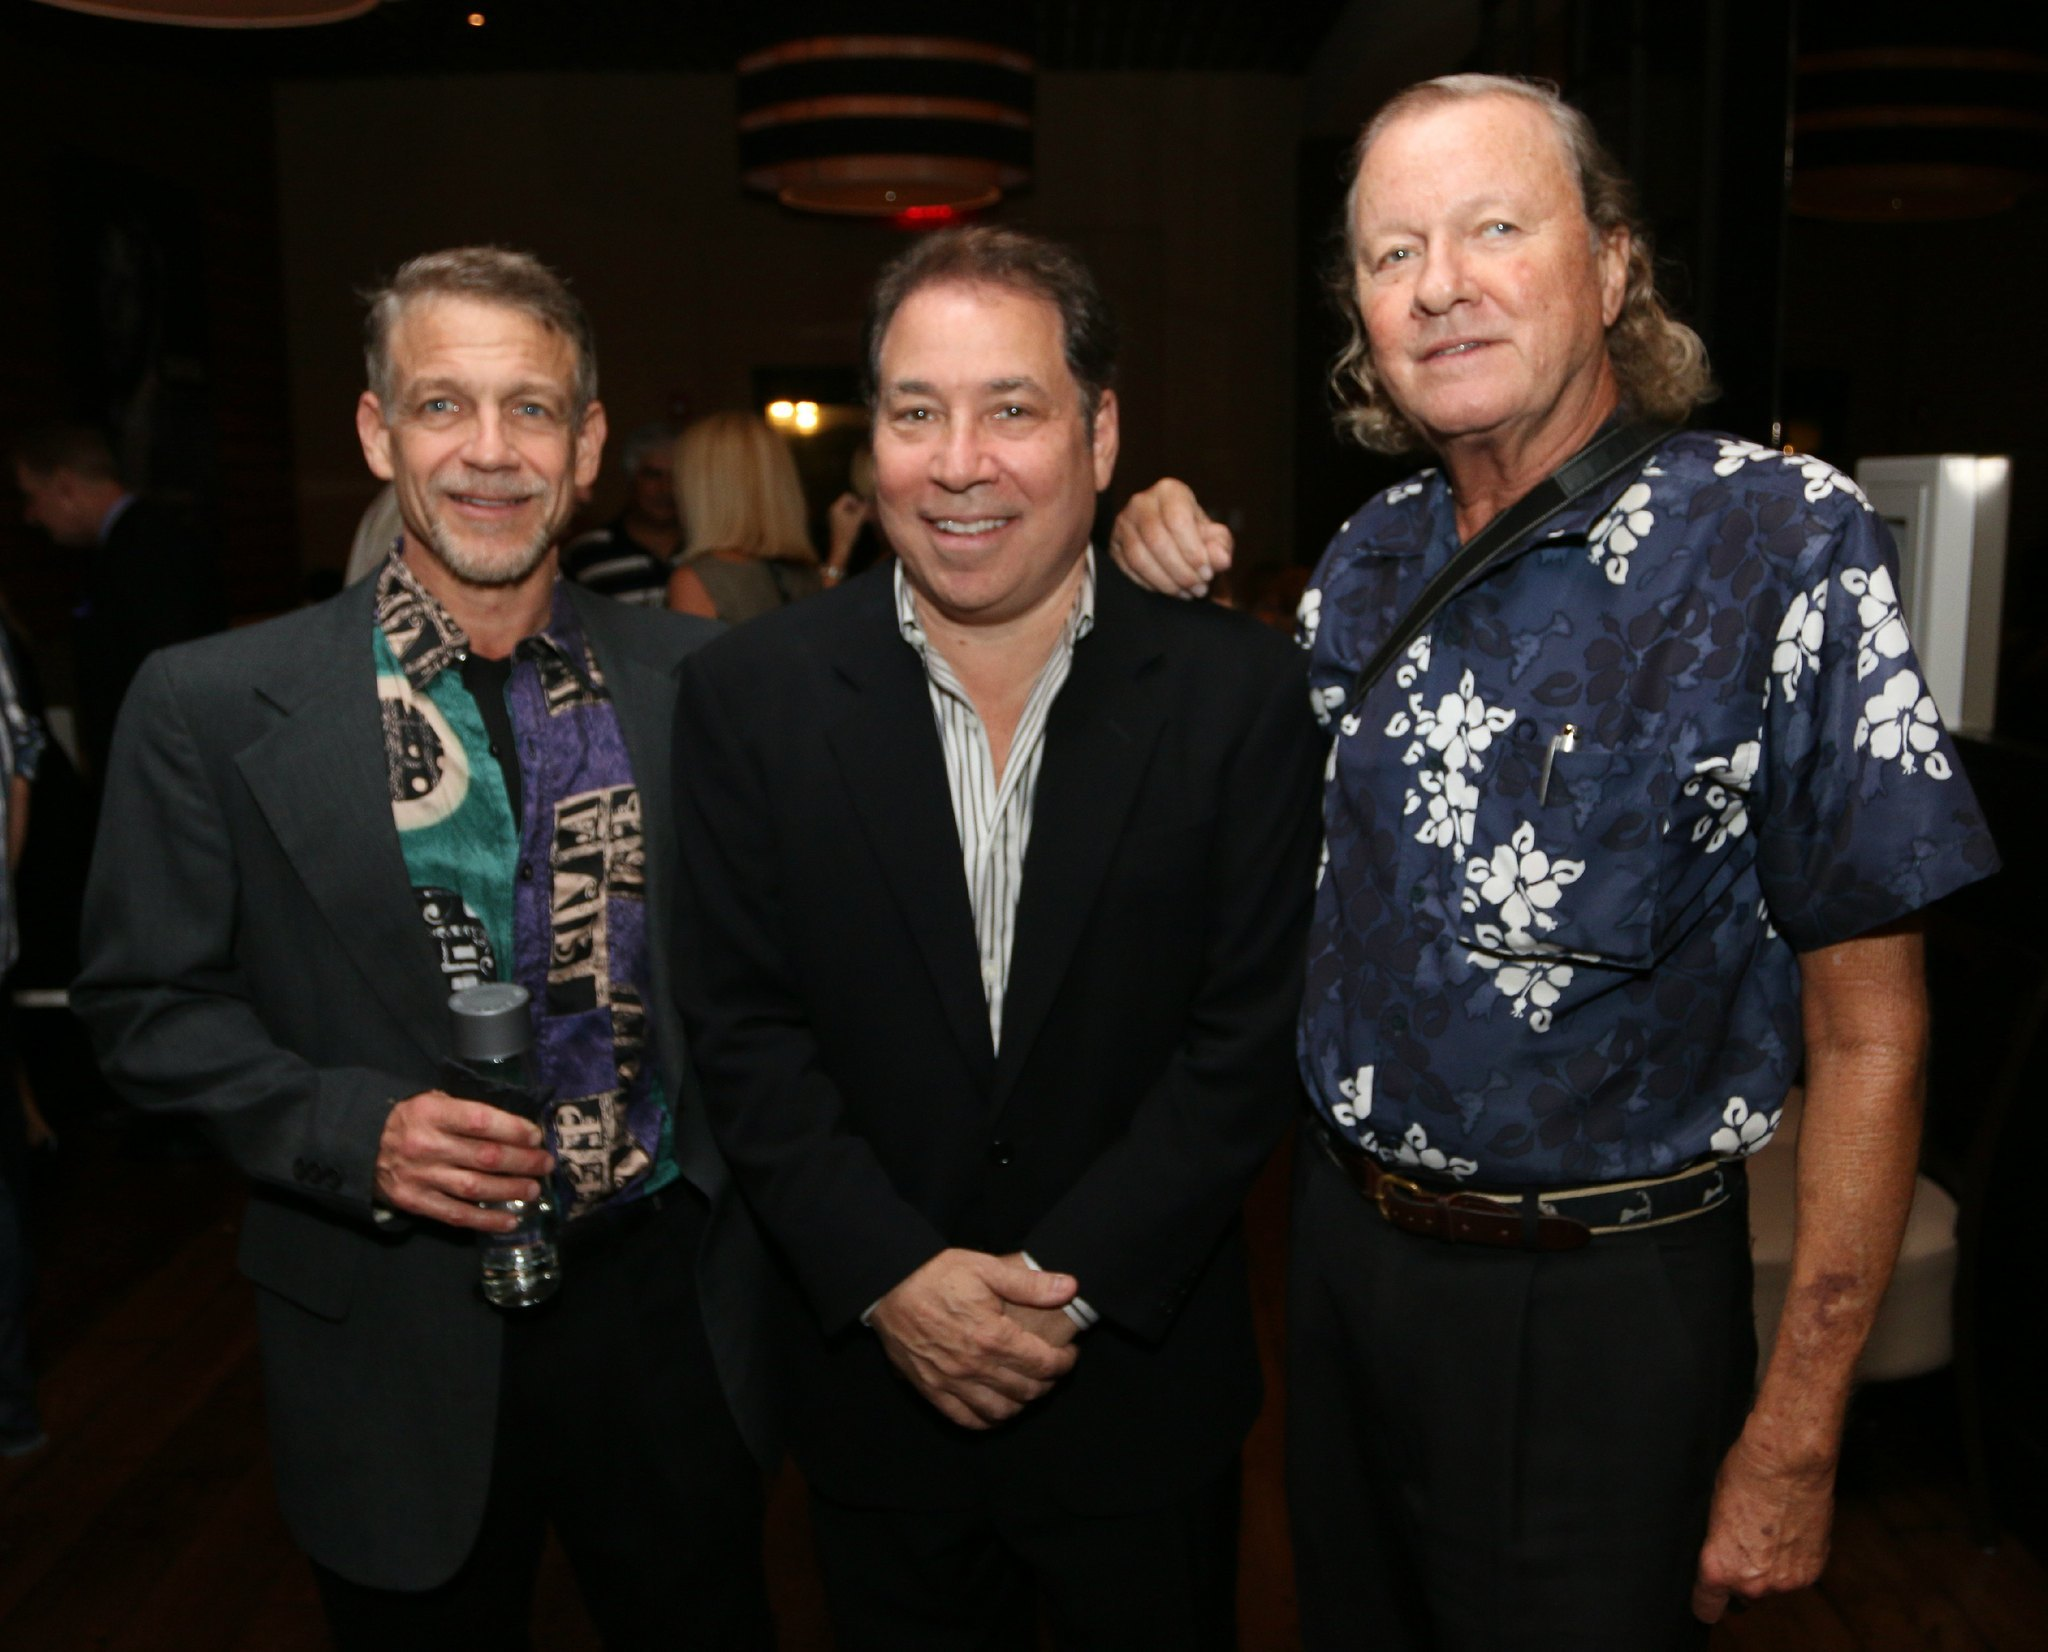 Jazziz Nightlife Grand Opening Party - Kenny Spahn, Michael Fagien and Skip Sheffield